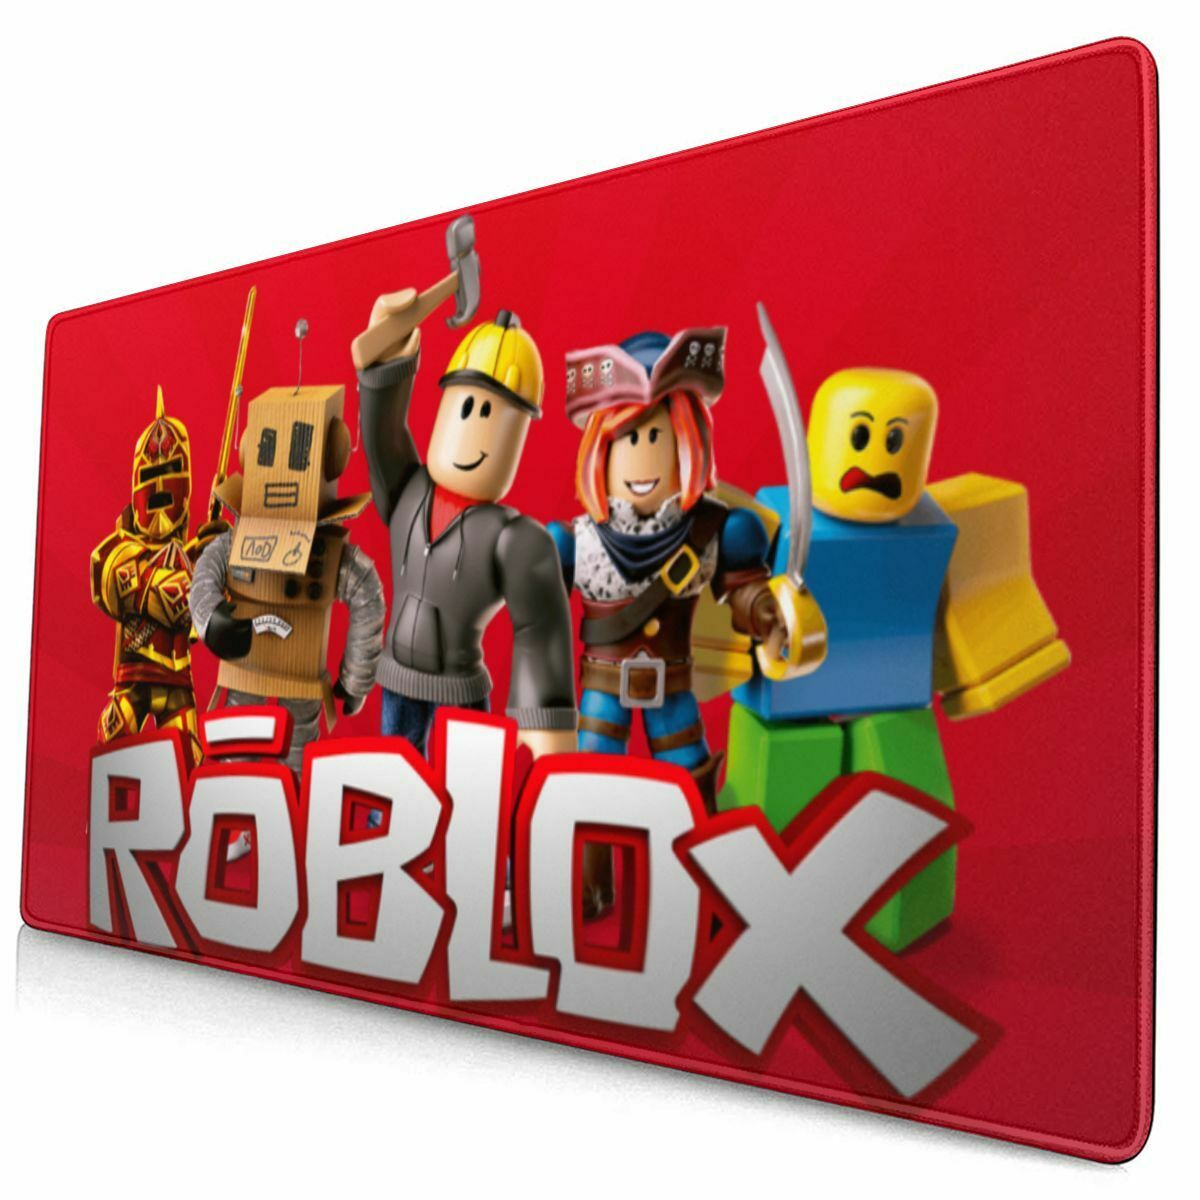 Roblox Mouse Lock Not Working Roblox Characters Gaming Mouse Pad Large Non Slip Desk Keyboard Mat Game Playmat Ebay